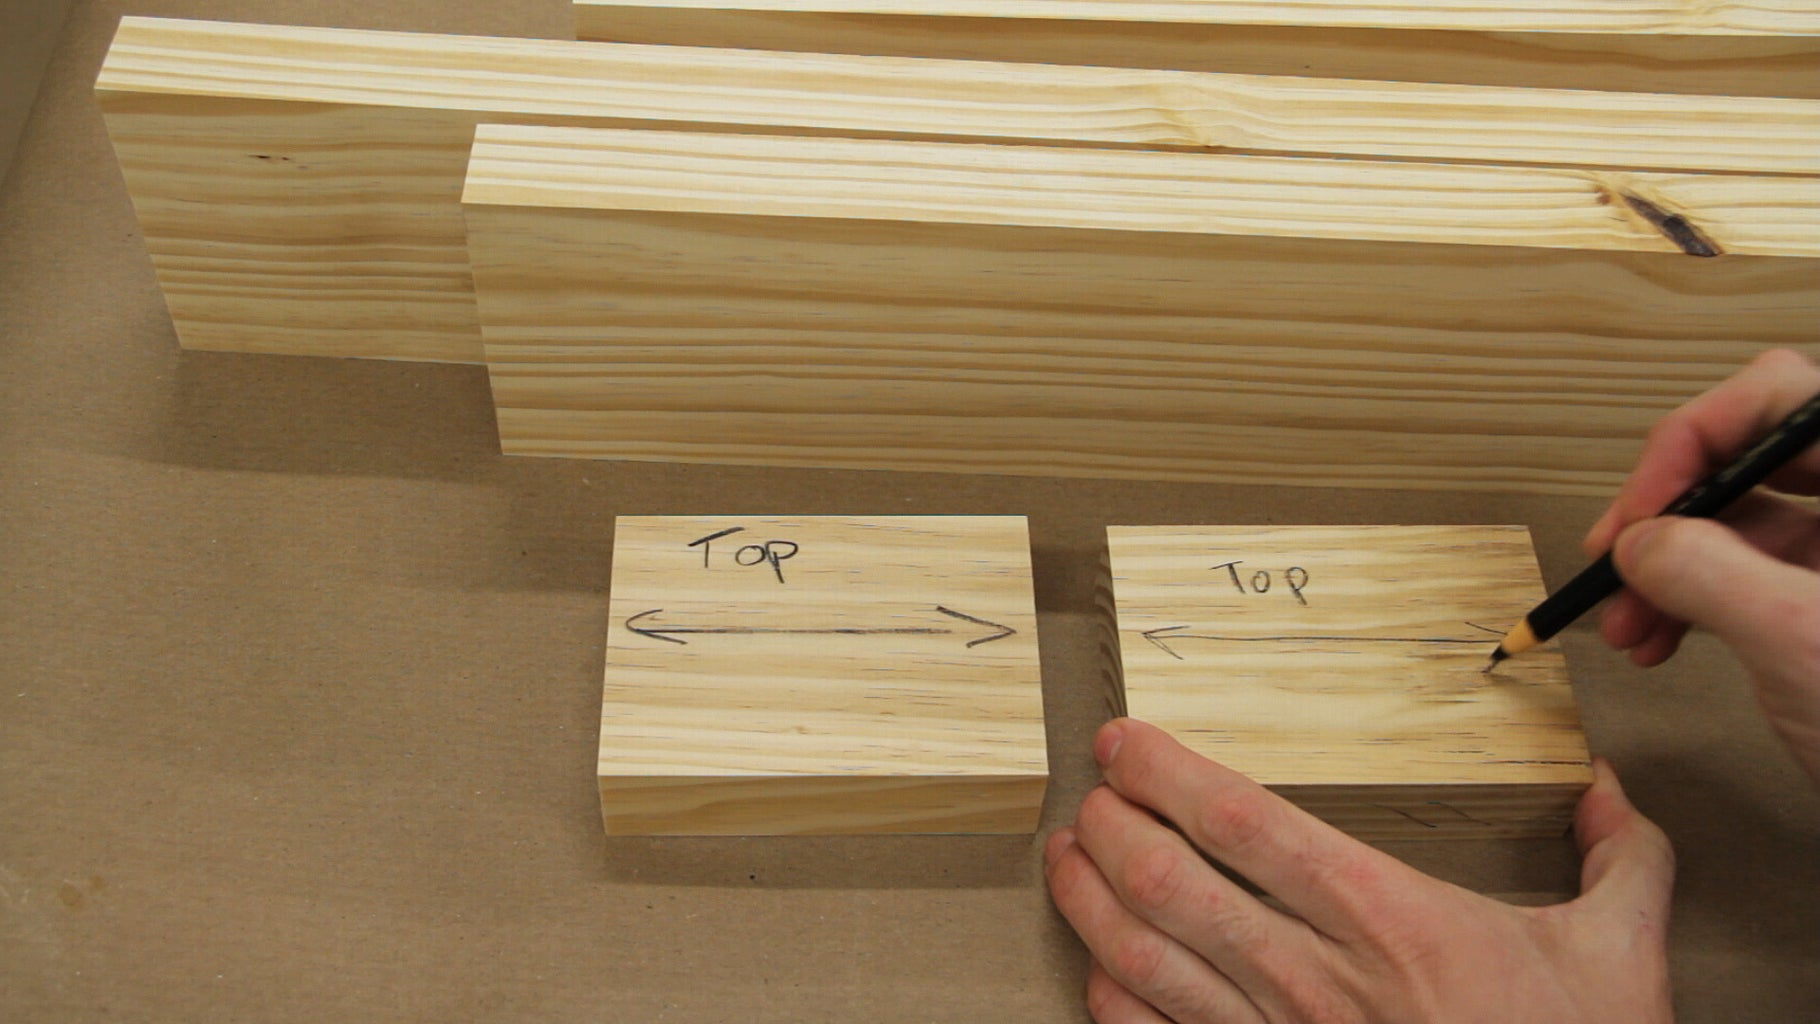 Preparing Boards for the Top